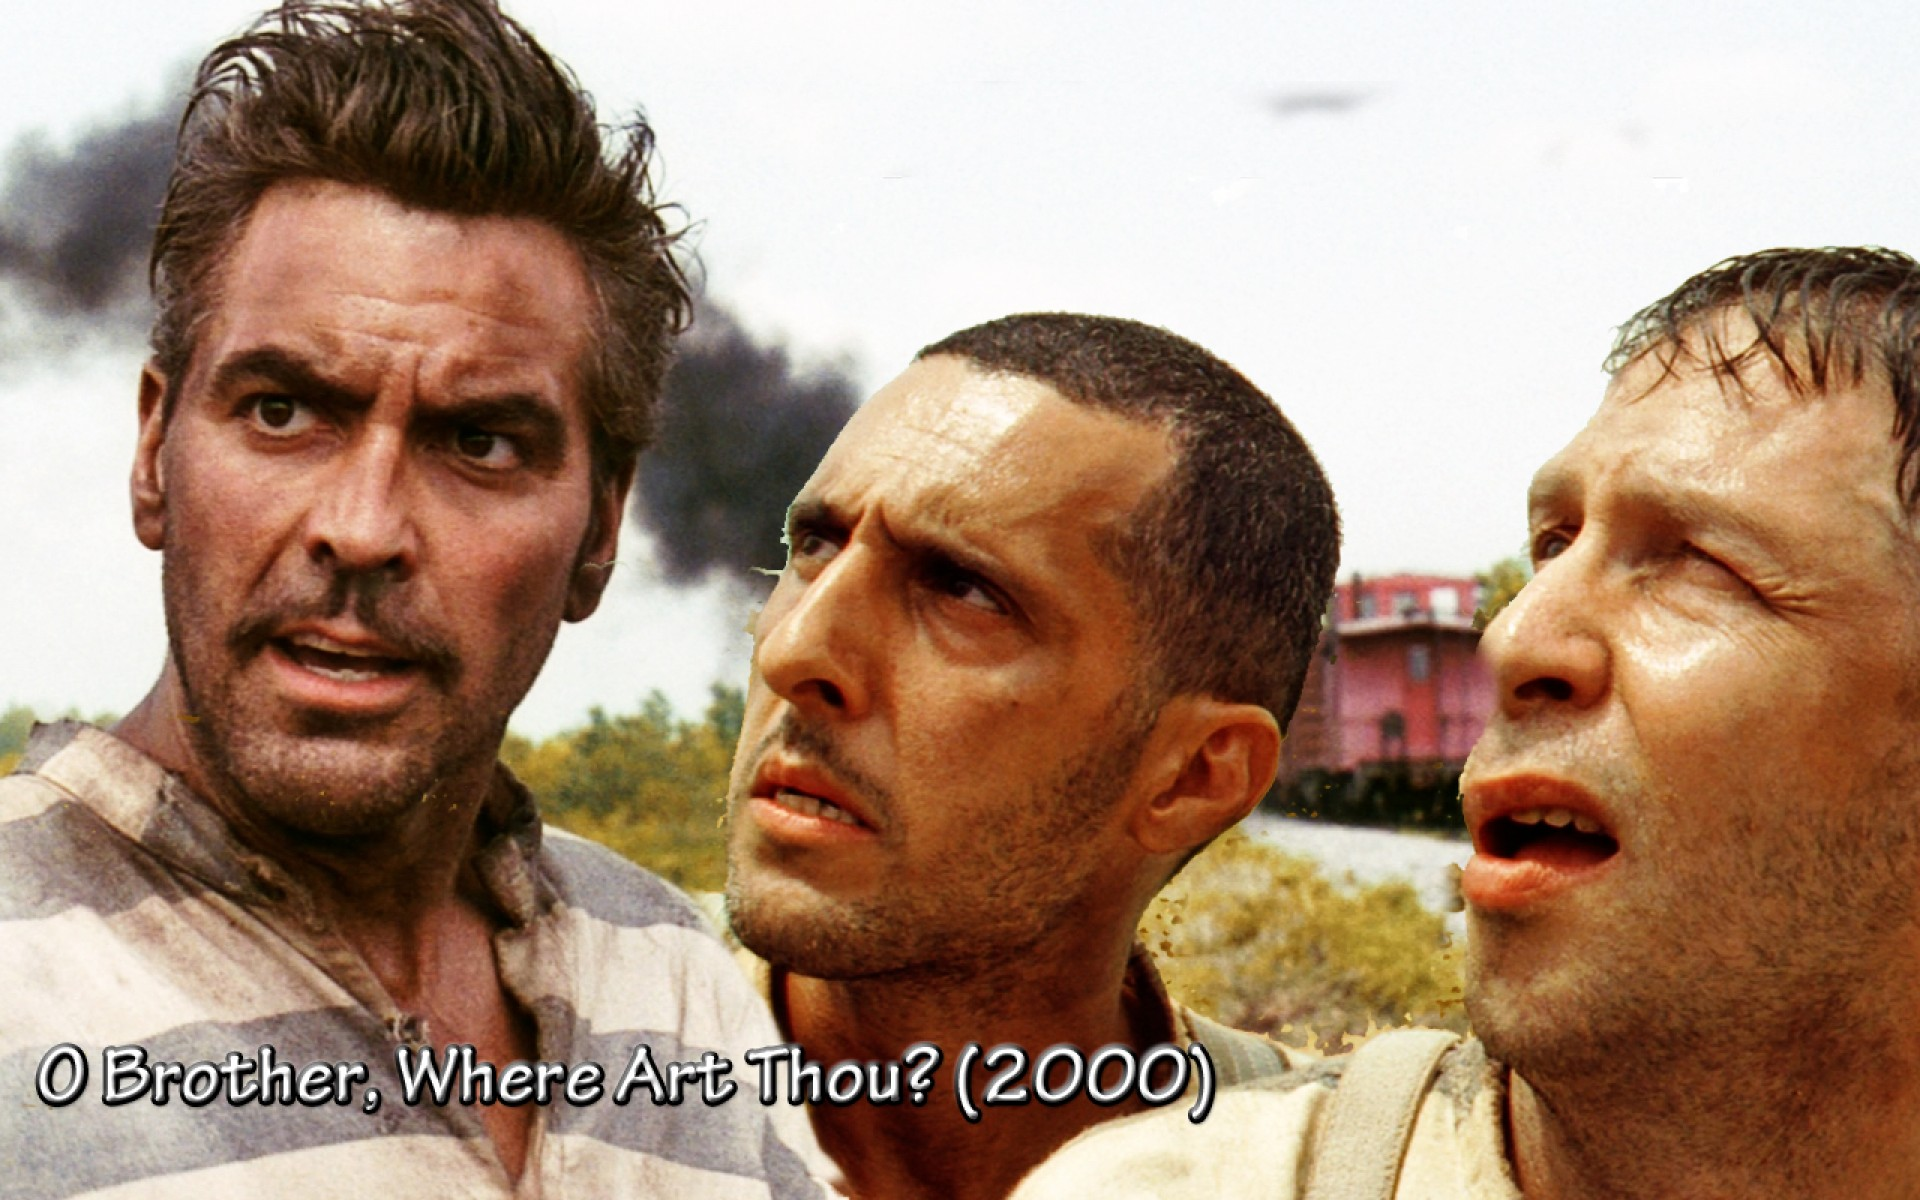 009 O Brother Where Art Thou Movies Essay Striking And The Odyssey Comparison Vs Compared To 1920